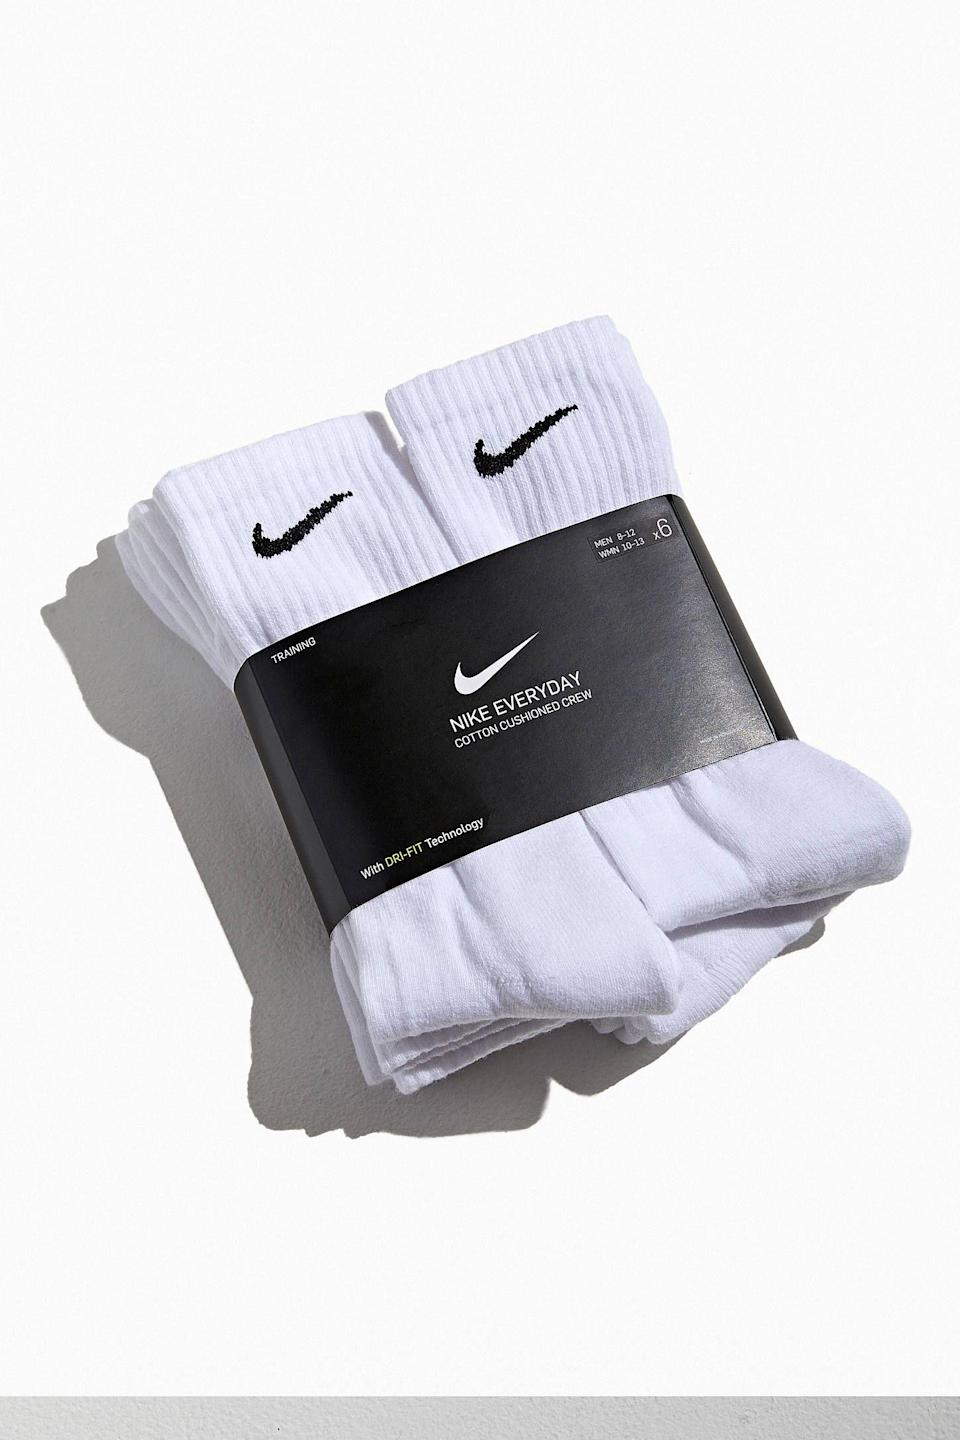 "<p><strong>Nike</strong></p><p>urbanoutfitters.com</p><p><strong>$20.00</strong></p><p><a href=""https://go.redirectingat.com?id=74968X1596630&url=https%3A%2F%2Fwww.urbanoutfitters.com%2Fshop%2Fnike-everyday-cushioned-crew-sock-6-pack2&sref=https%3A%2F%2Fwww.prevention.com%2Flife%2Fg29507400%2Funique-gifts-for-boyfriends%2F"" rel=""nofollow noopener"" target=""_blank"" data-ylk=""slk:Shop Now"" class=""link rapid-noclick-resp"">Shop Now</a></p><p>Pretty much every man owns Nike socks, meaning pretty much every man needs more. This multipack should last him until next year, when you can gift him another—it's the circle of life. </p>"